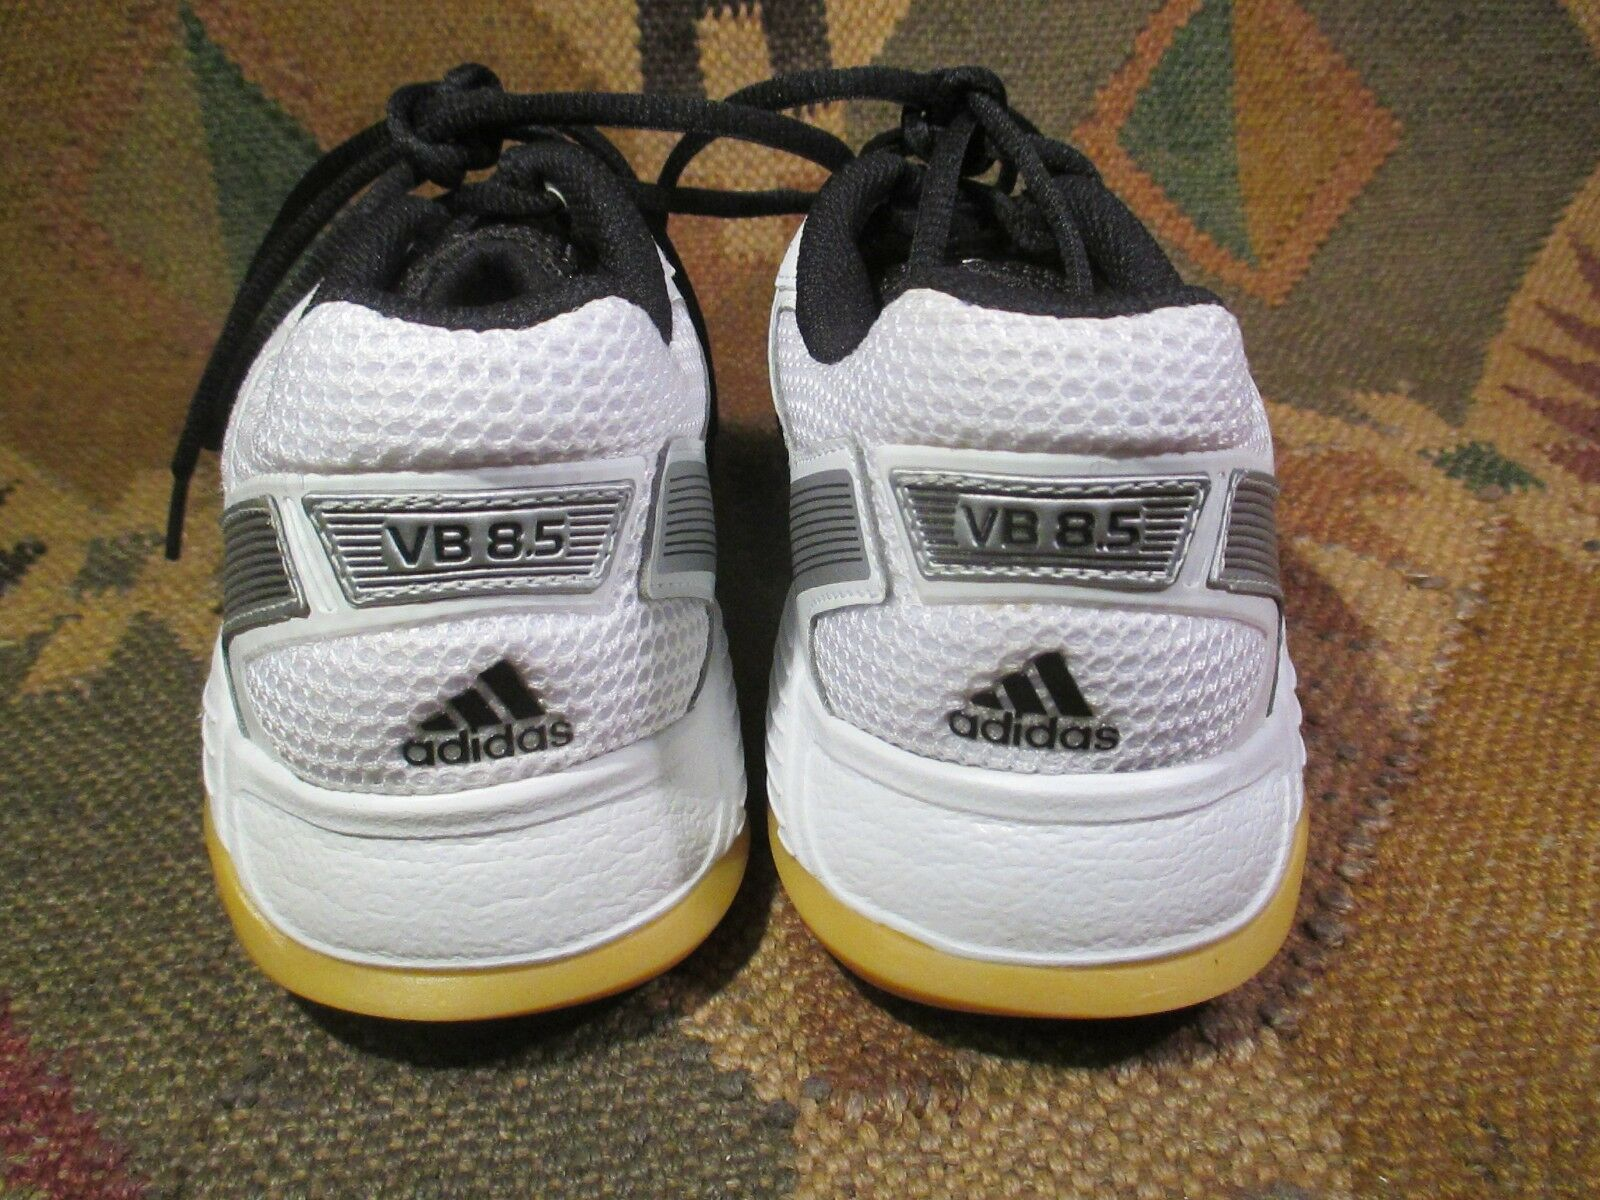 NEW NEW NEW ADIDAS VB 8.5  VOLLEYBALL Chaussures Taille 9 - USA e8668c